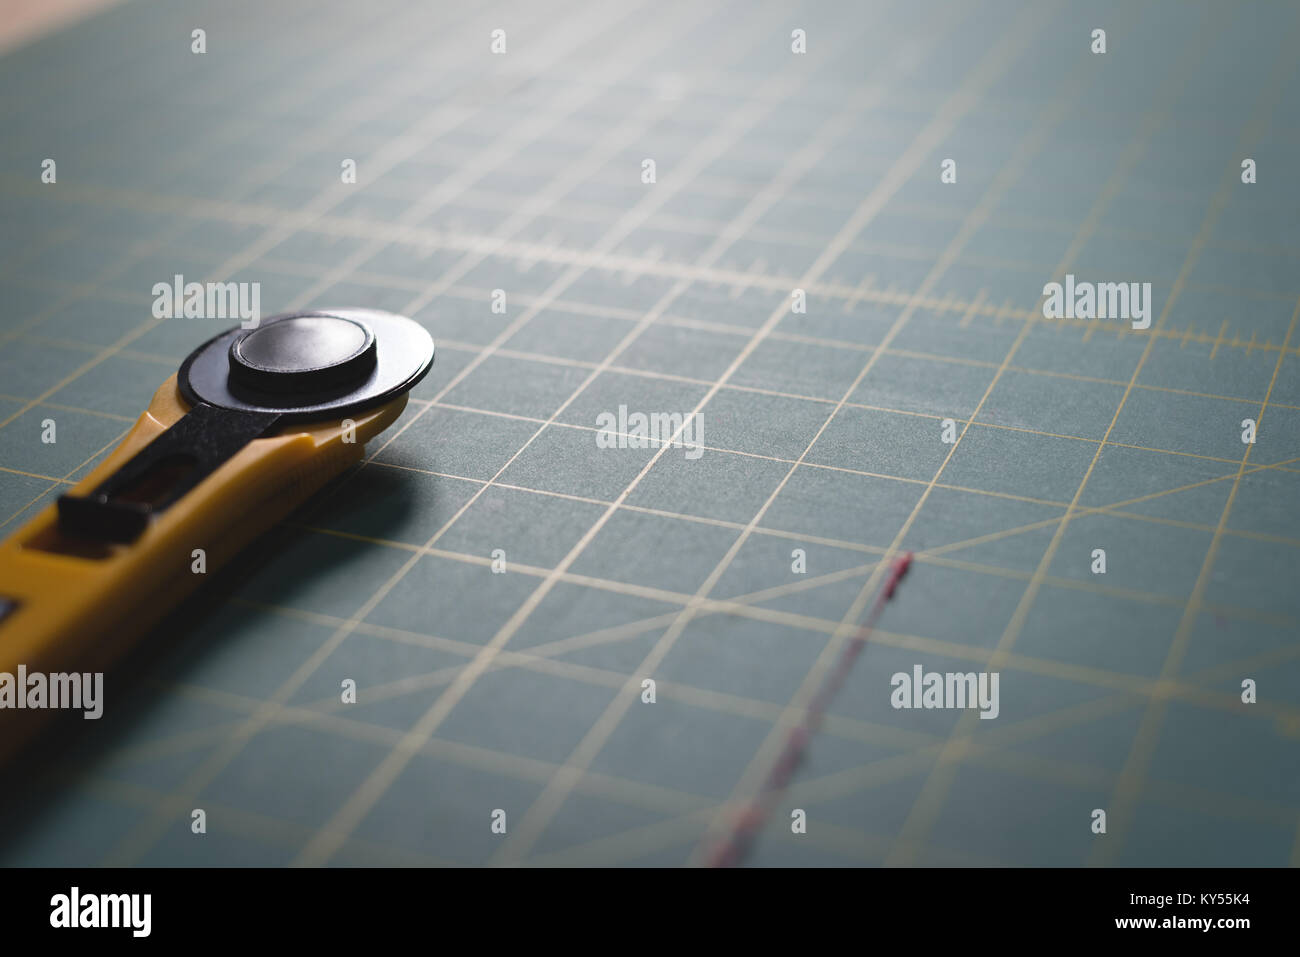 Blade on table - Stock Image